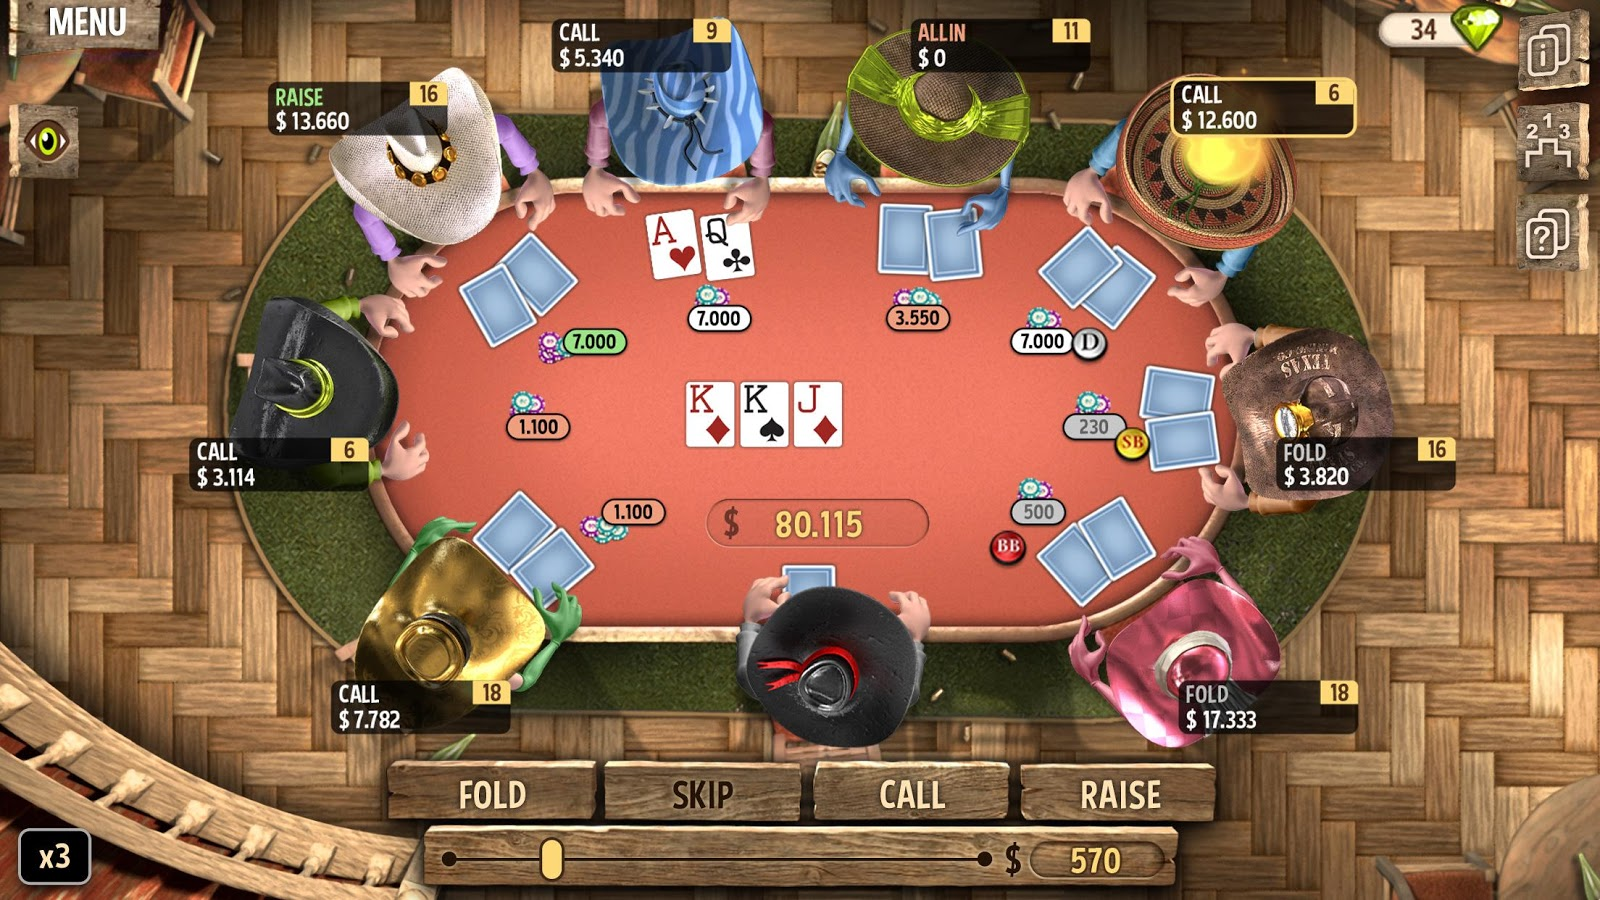 Governor poker 2 android apk